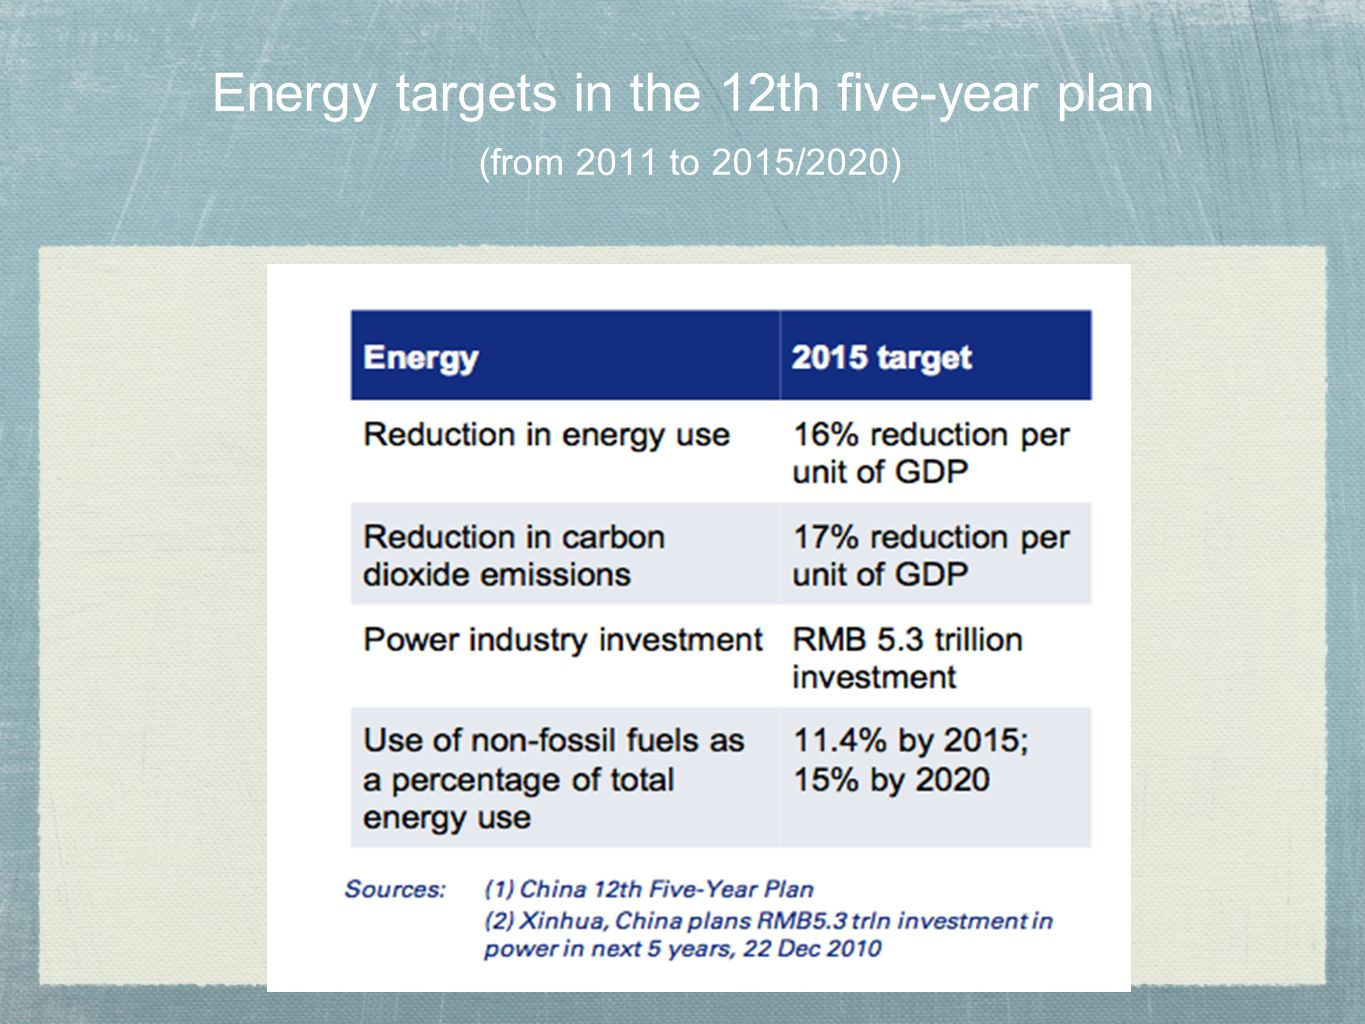 Energy targets in the 12th five-year plan (from 2011 to 2015/2020)